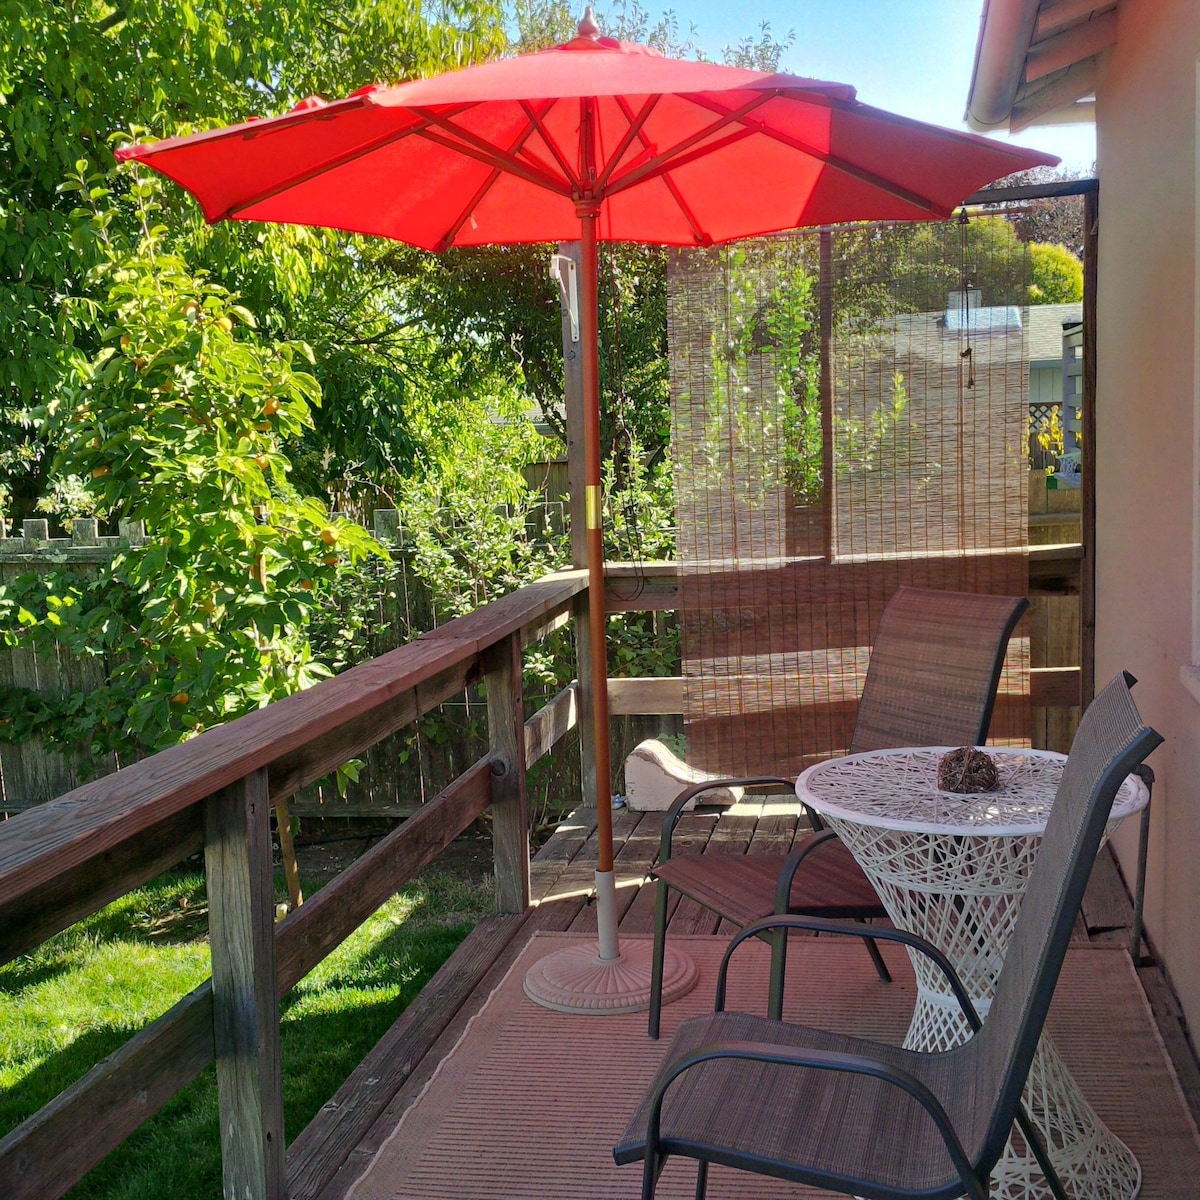 Enjoy morning coffee or day's end wine on your own private deck.